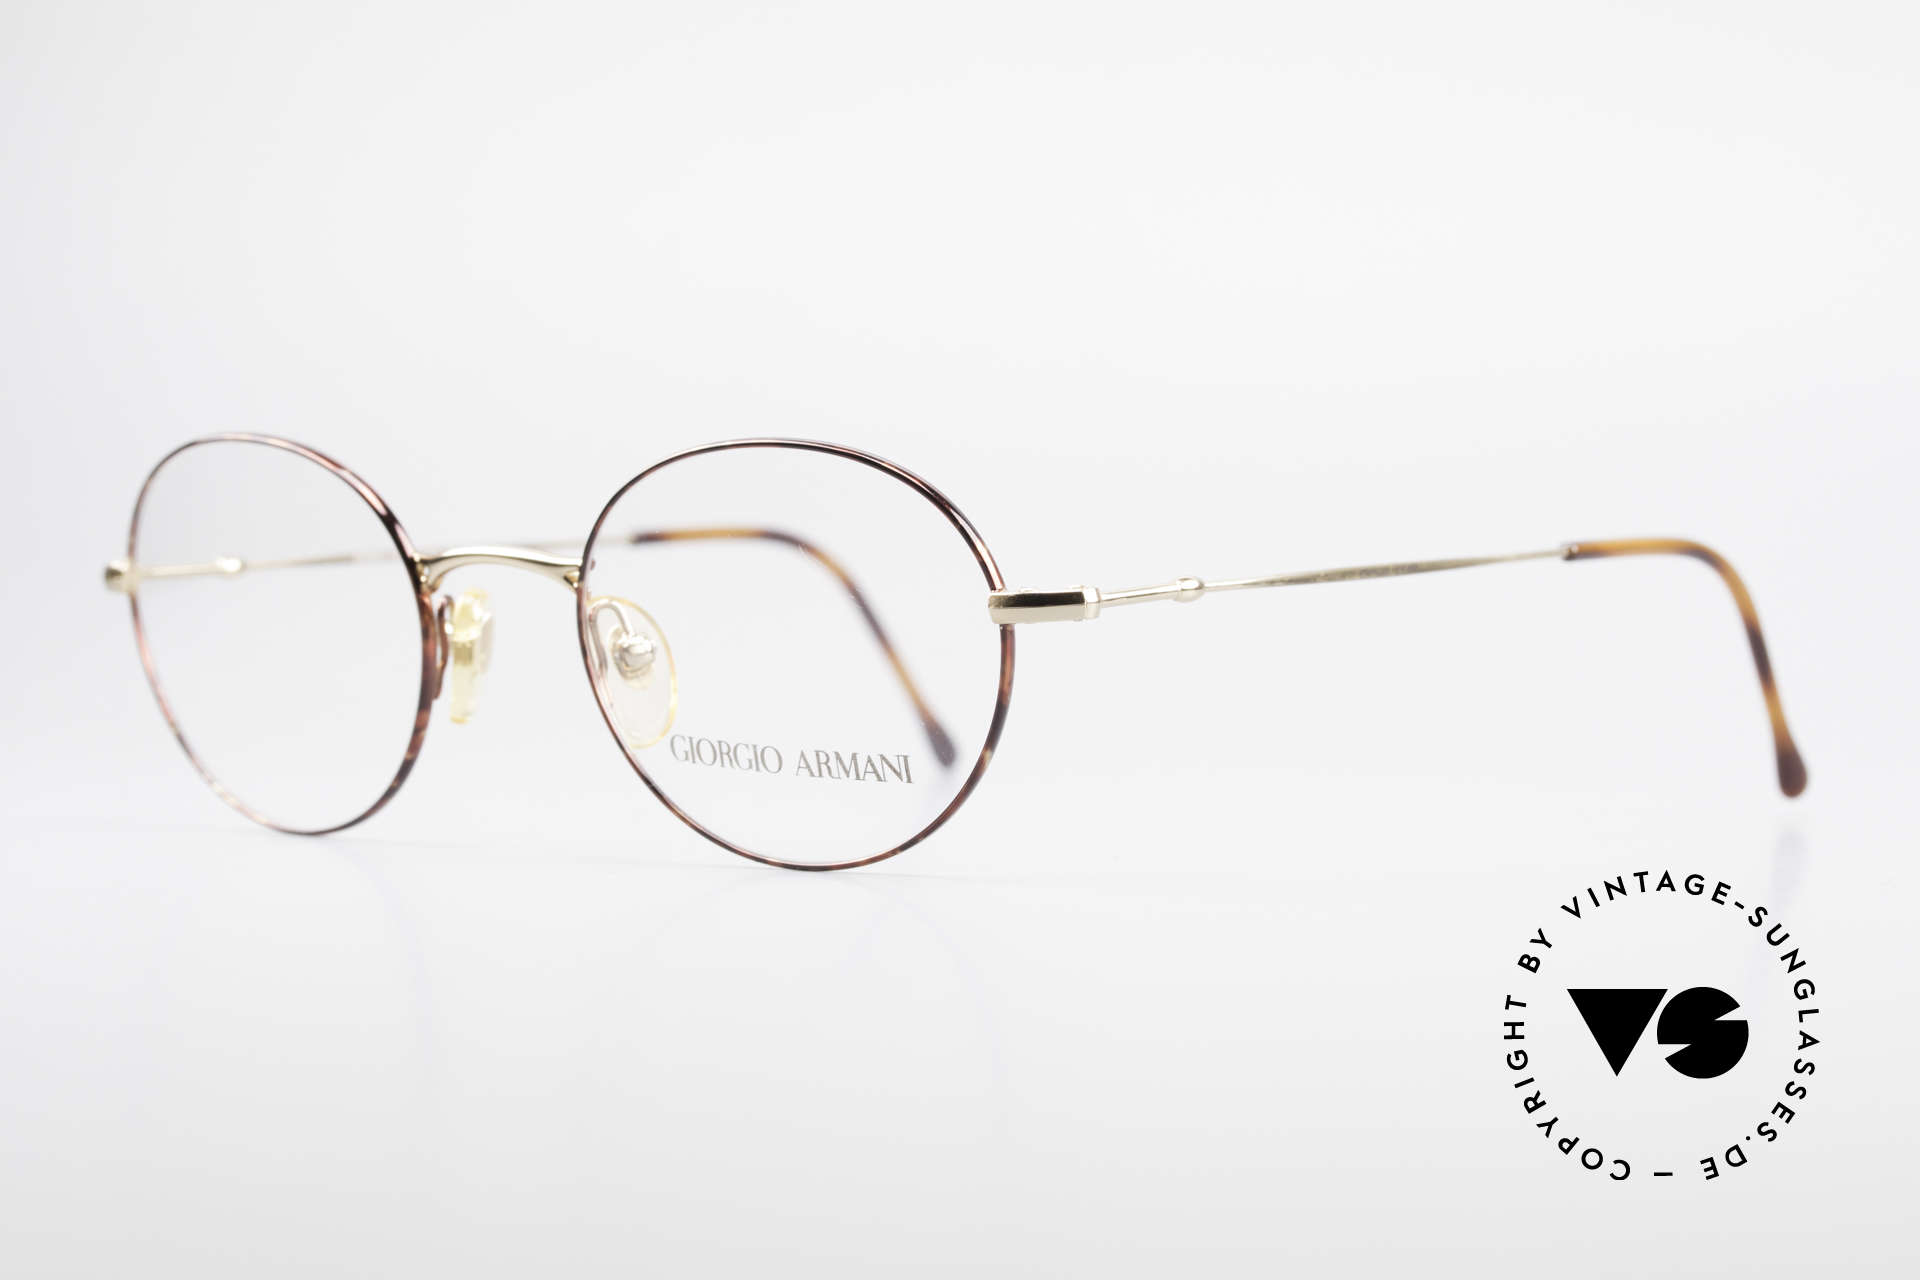 Giorgio Armani 252 Oval Vintage Eyeglasses 90's, elegant frame finish in gold and chestnut-brown, Made for Men and Women